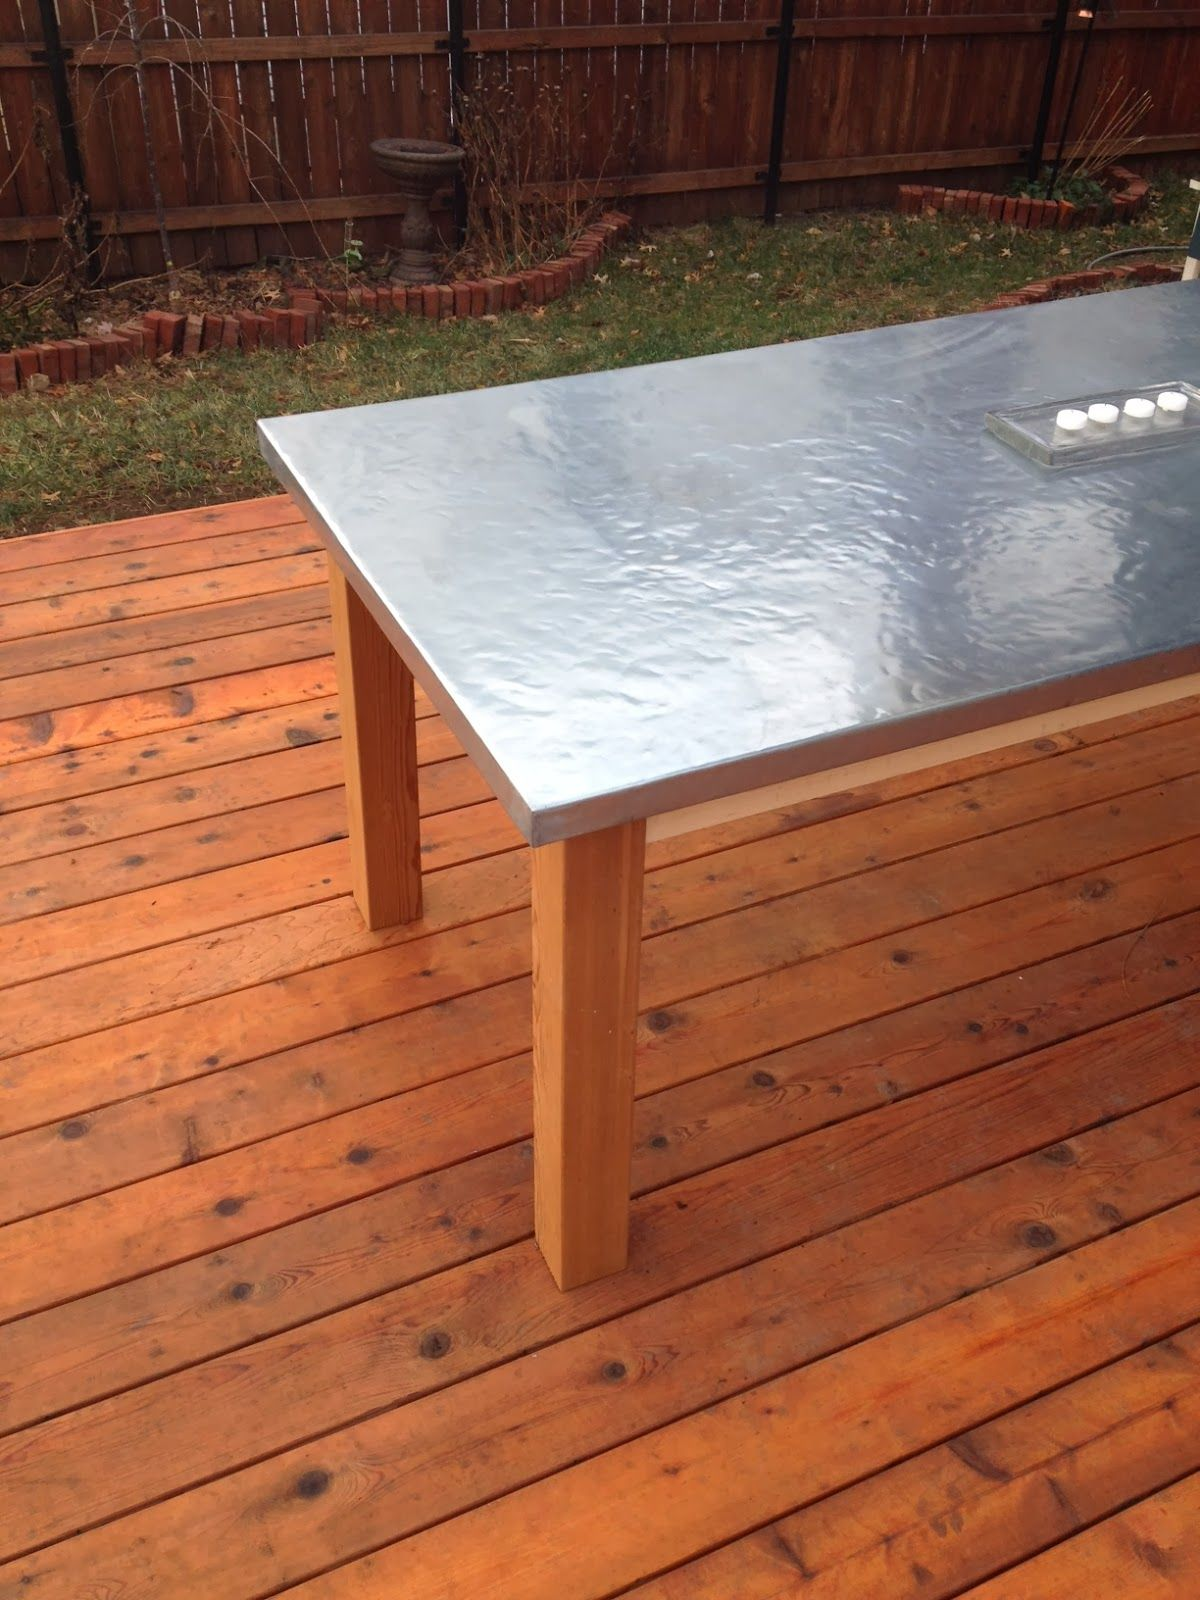 How To Make A Diy Outdoor Zinc Table Diy Outdoor Table Zinc